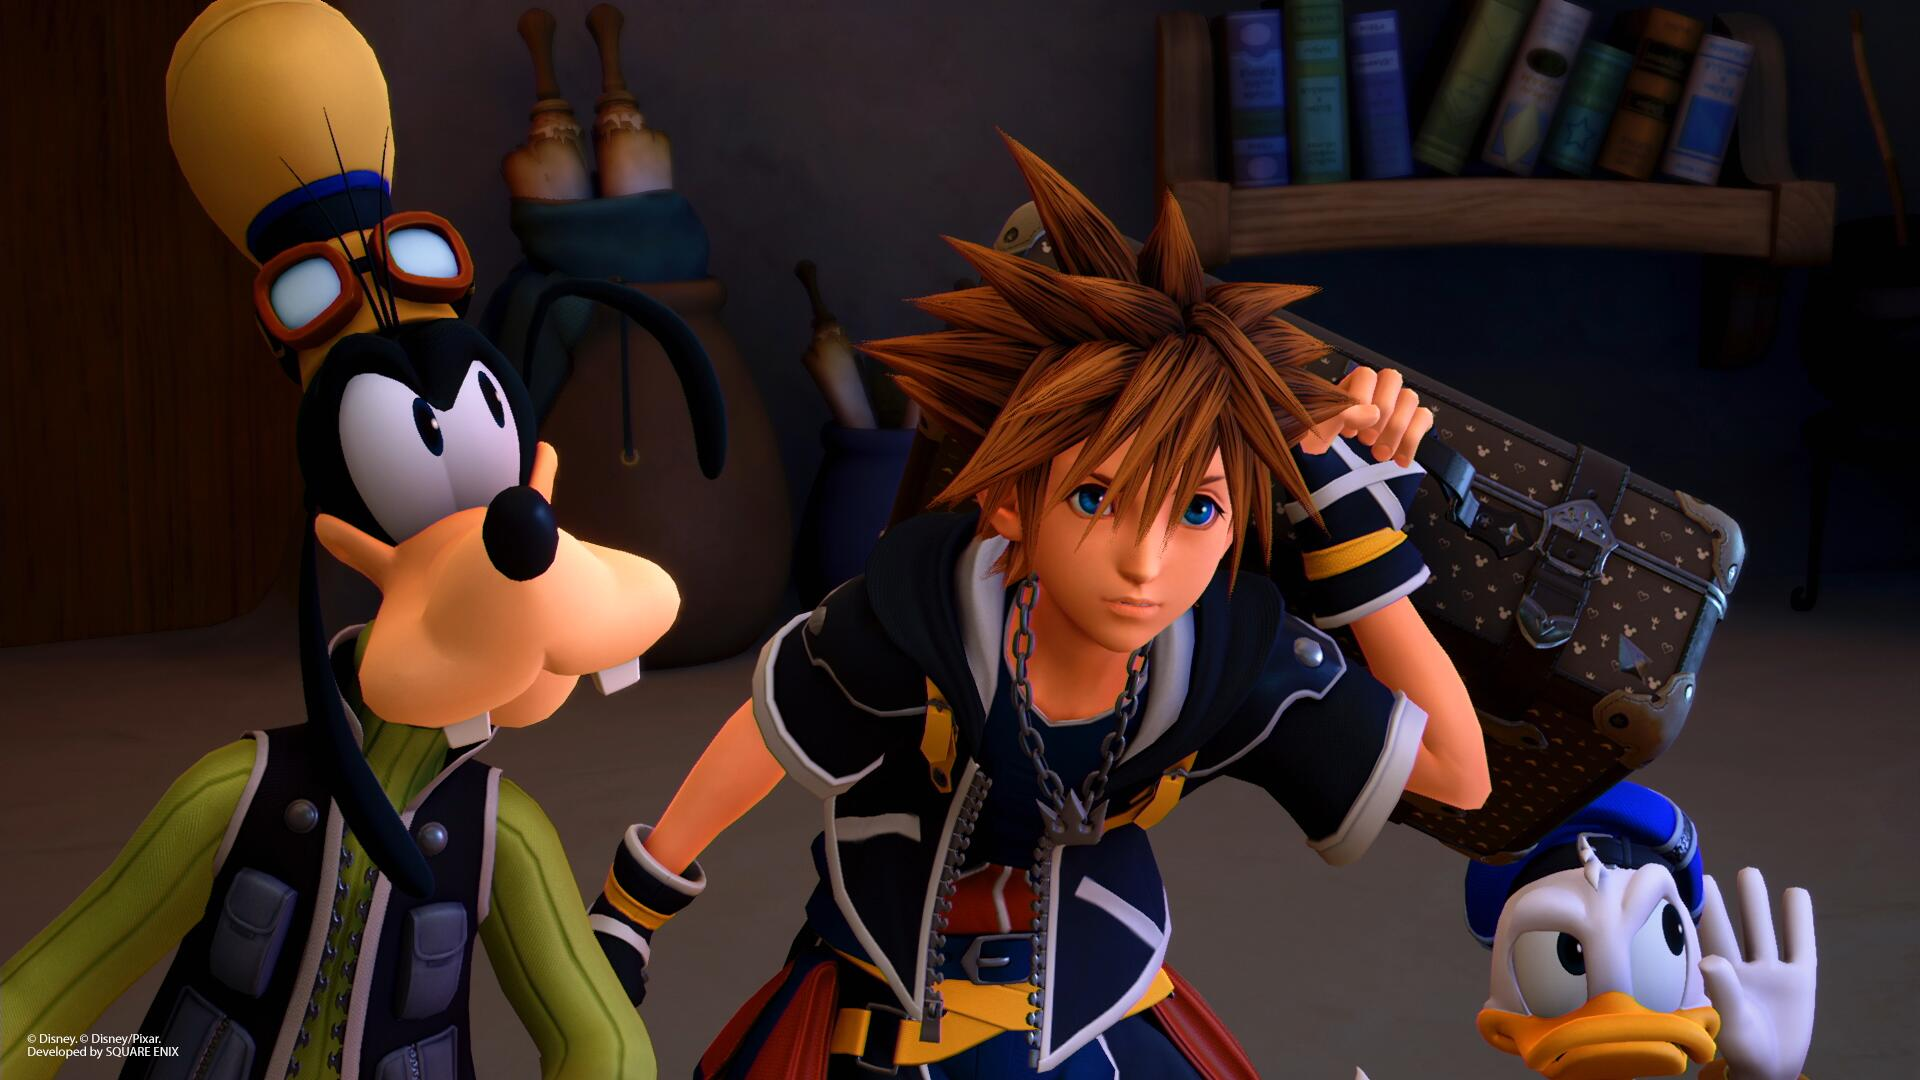 Haley Joel Osment on Growing up in Kingdom Hearts